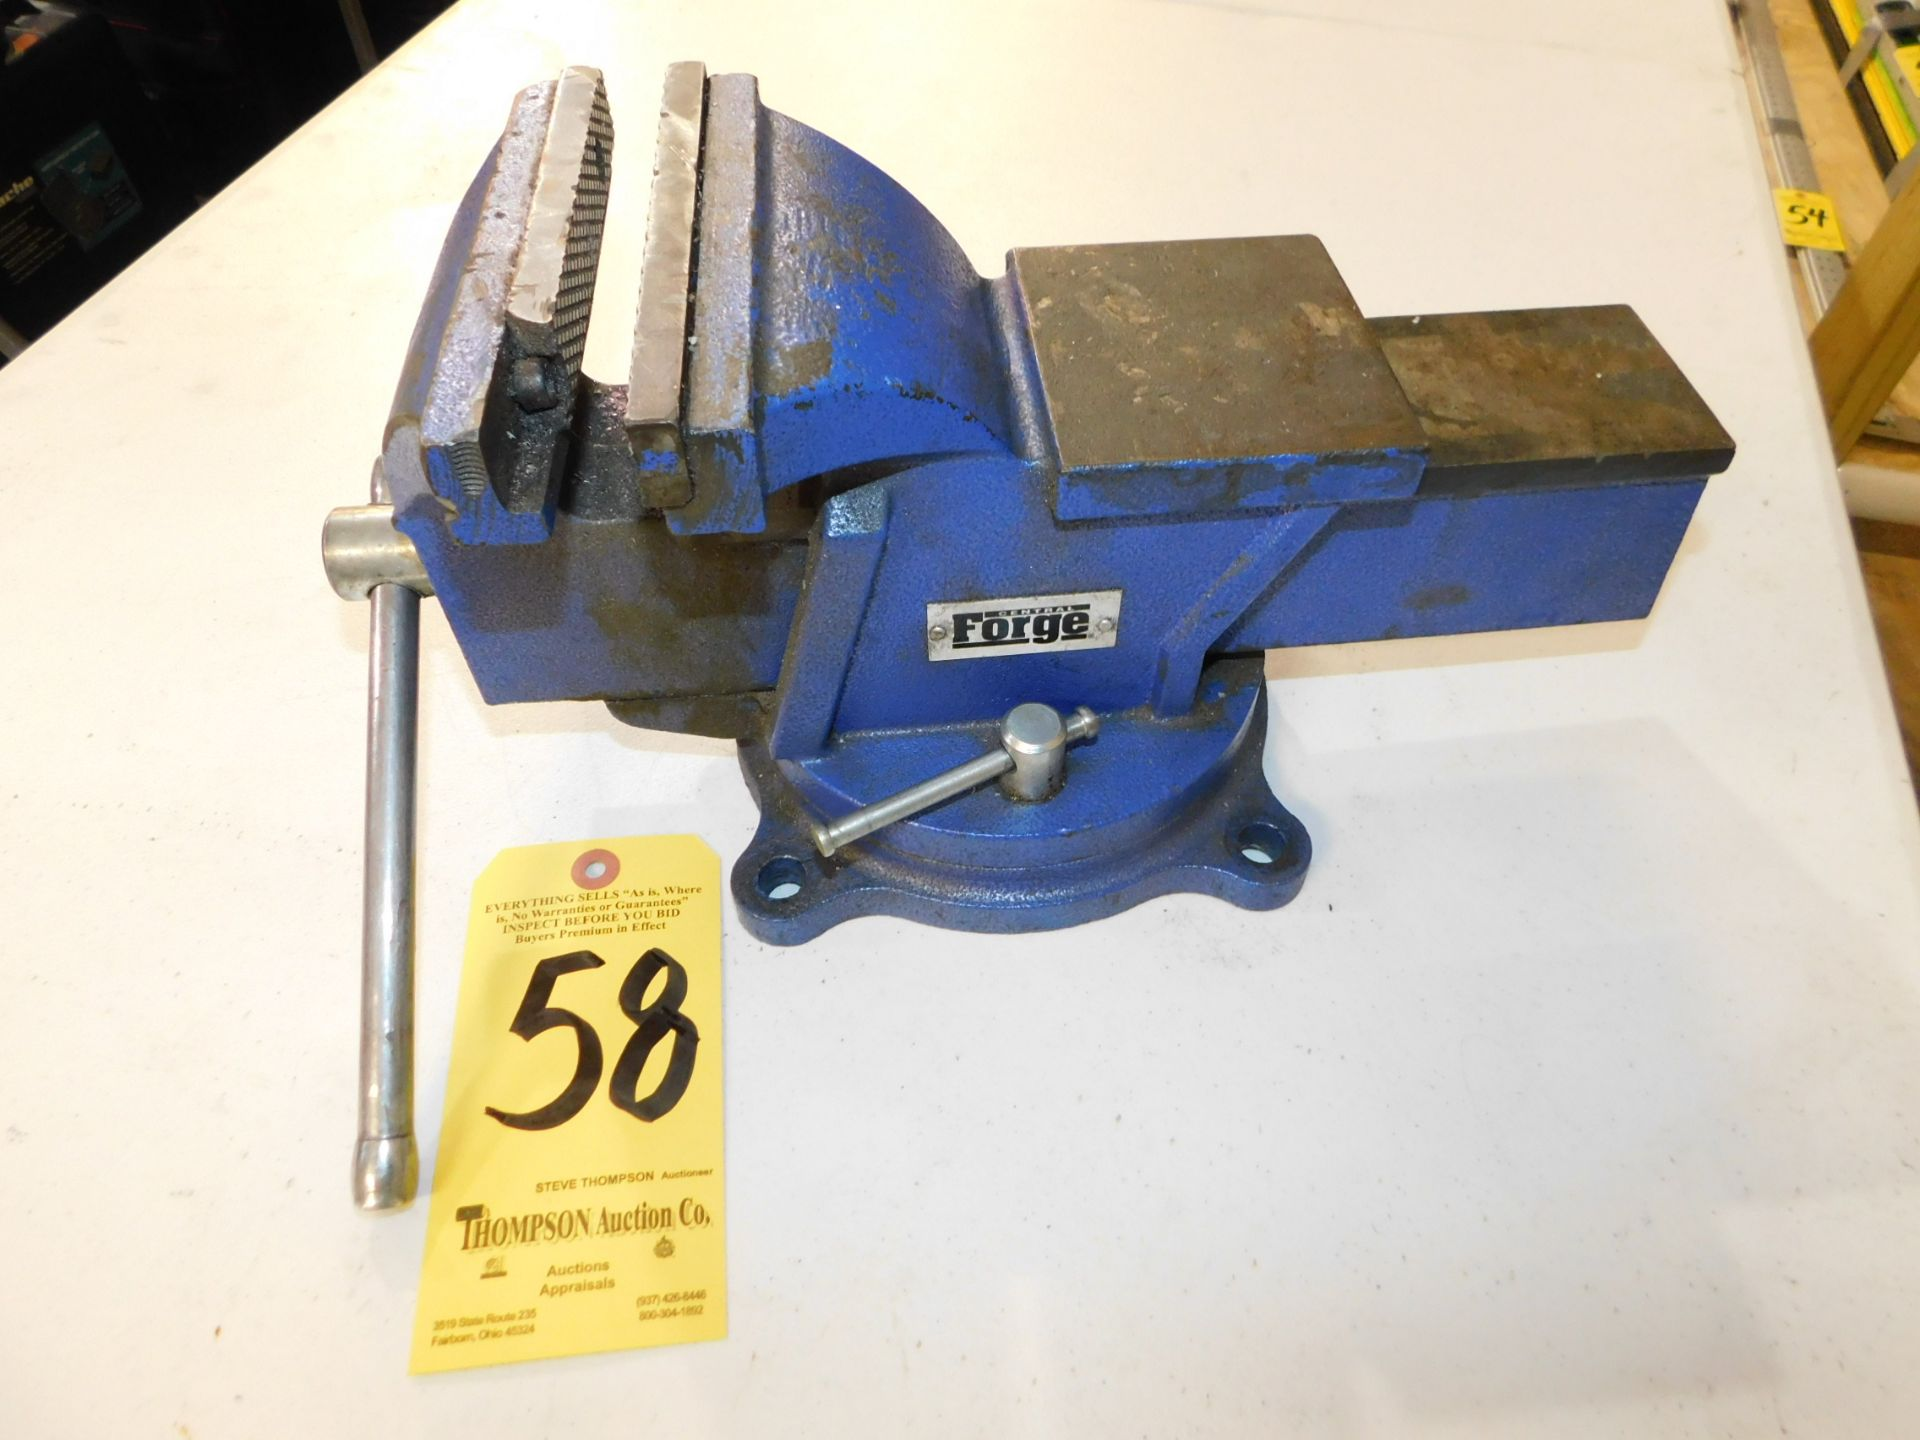 """Lot 58 - 6"""" Bench Vise, Lot Location 3204 Olympia Dr. A, Lafayette, IN 47909"""